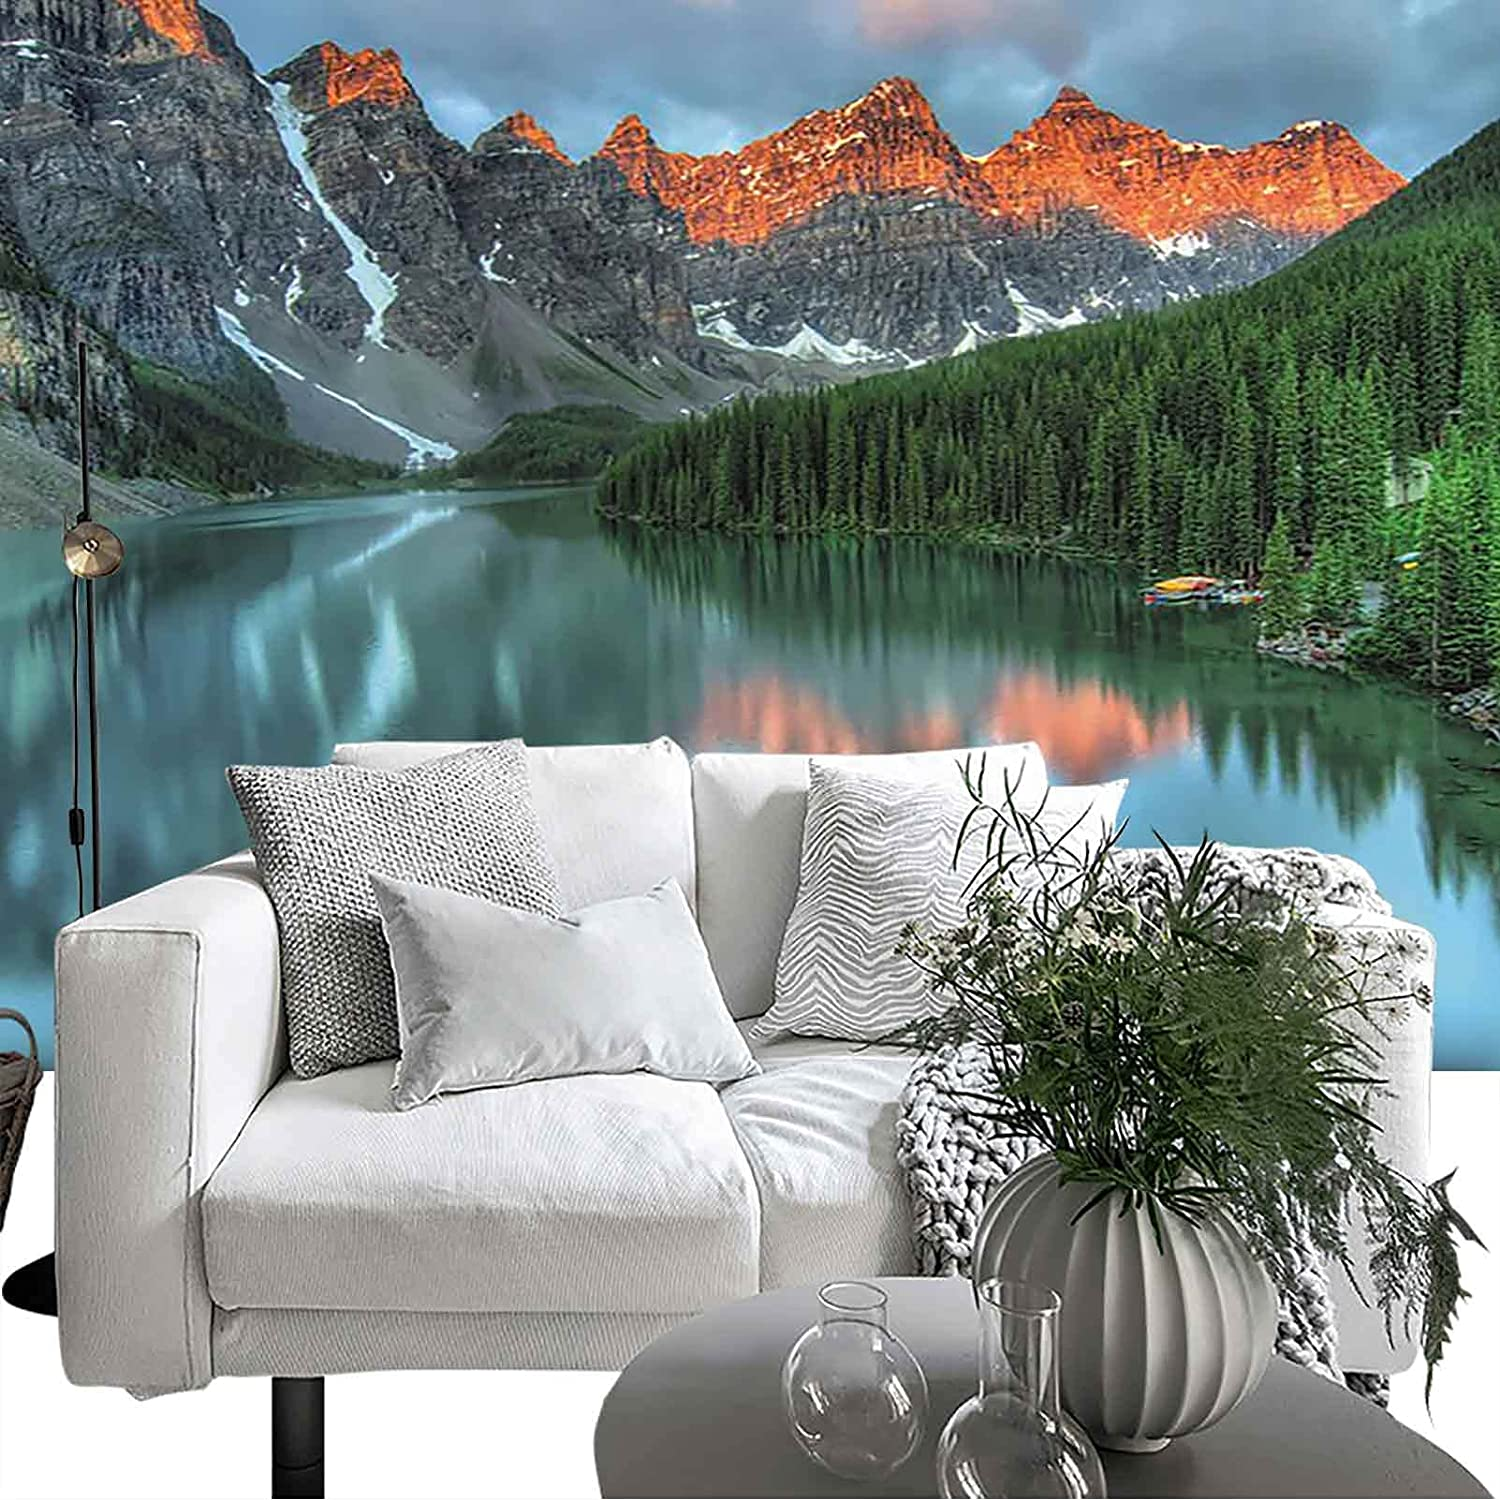 Removable Wallpaper Cottage Decor Collection Sale item Moraine at low-pricing Sunrise